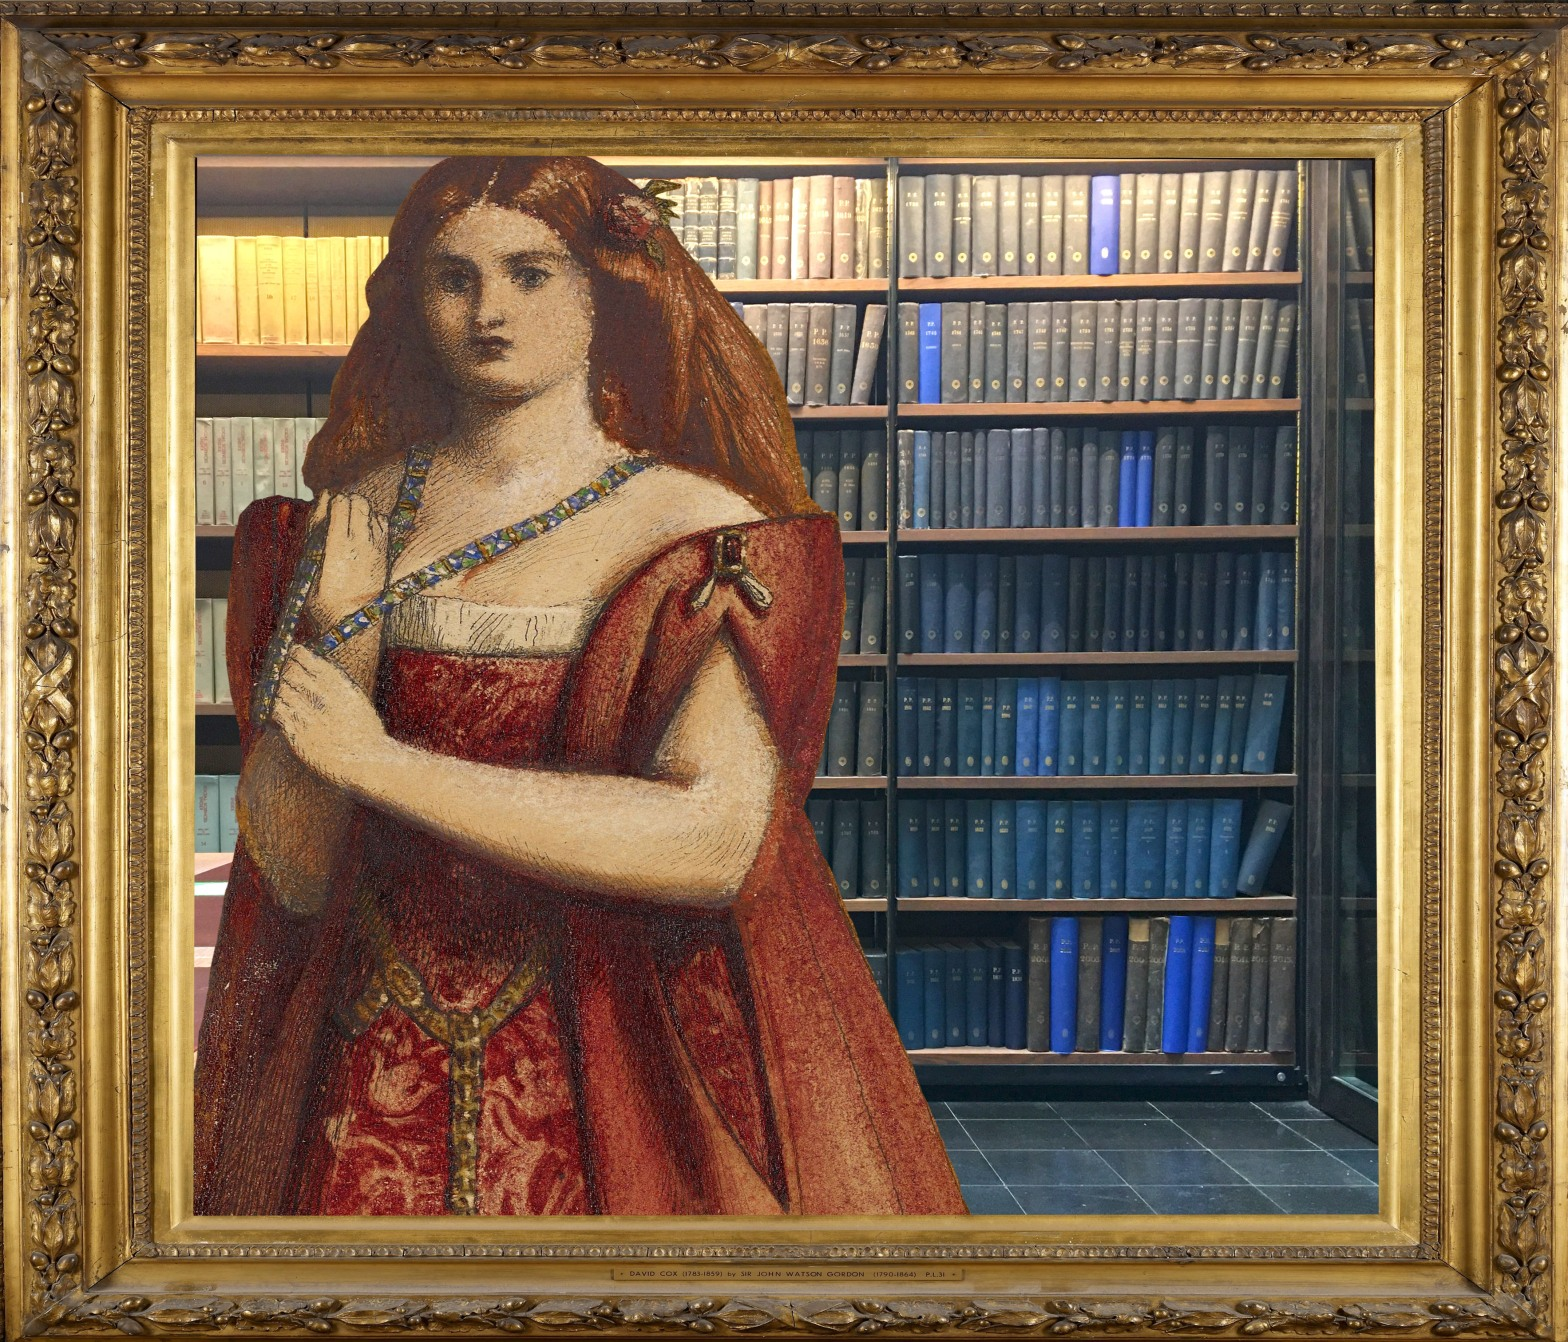 """Dante Gabriel Rossetti's """"Rosso Vestita"""" (Dressed in Red) (1850) in the Lightwell at the London Library, St. James's, London"""